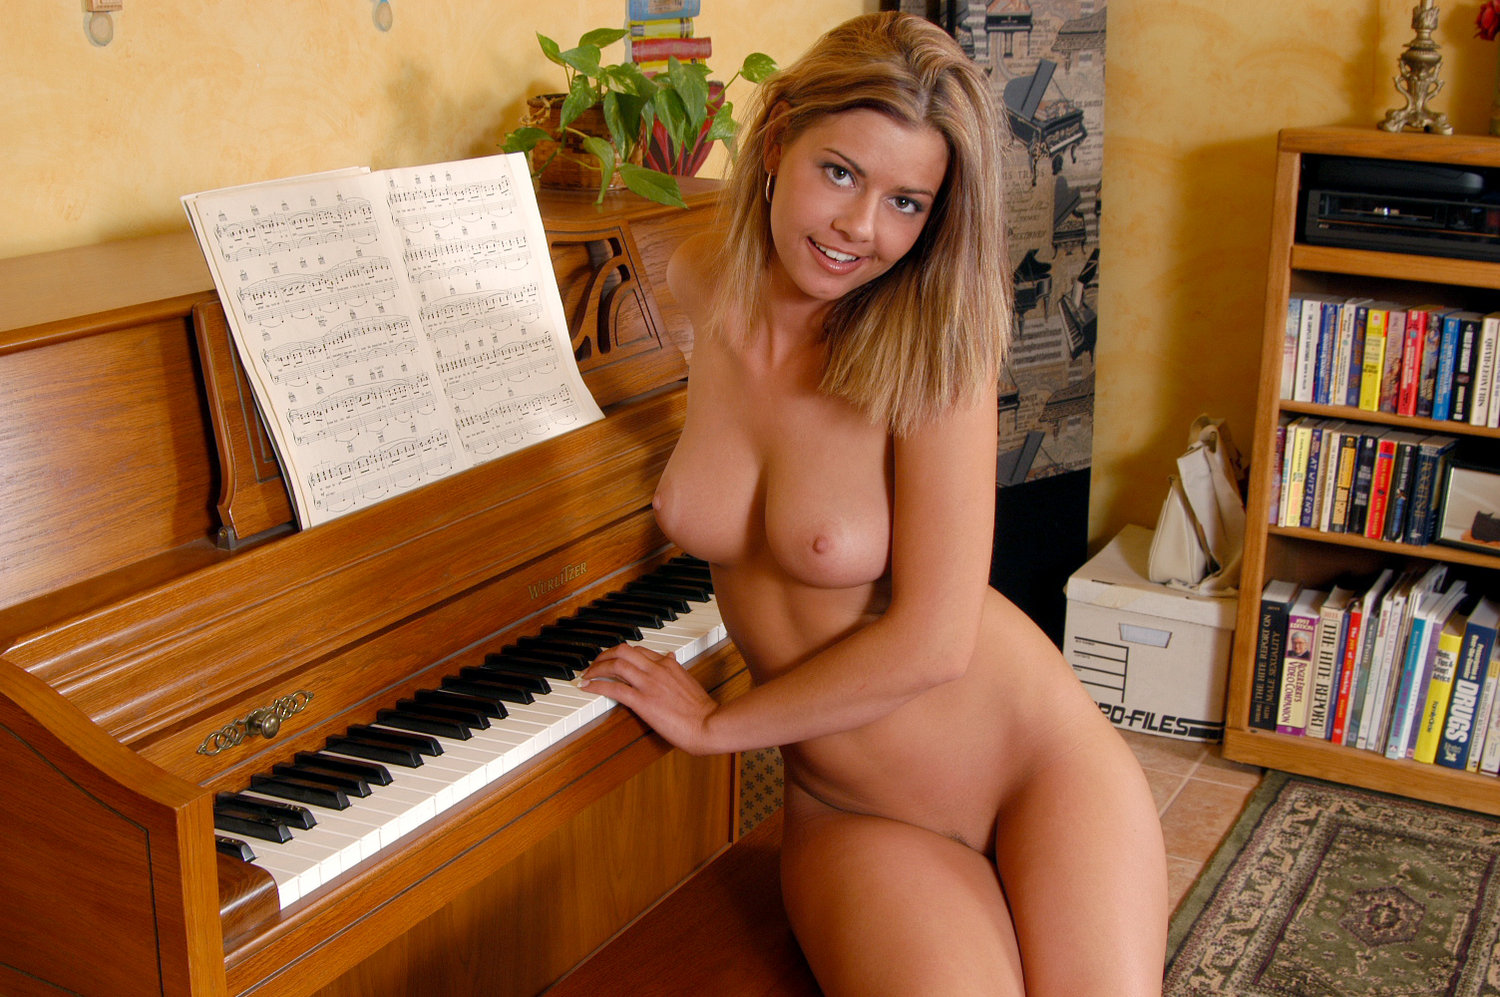 Nude on piano